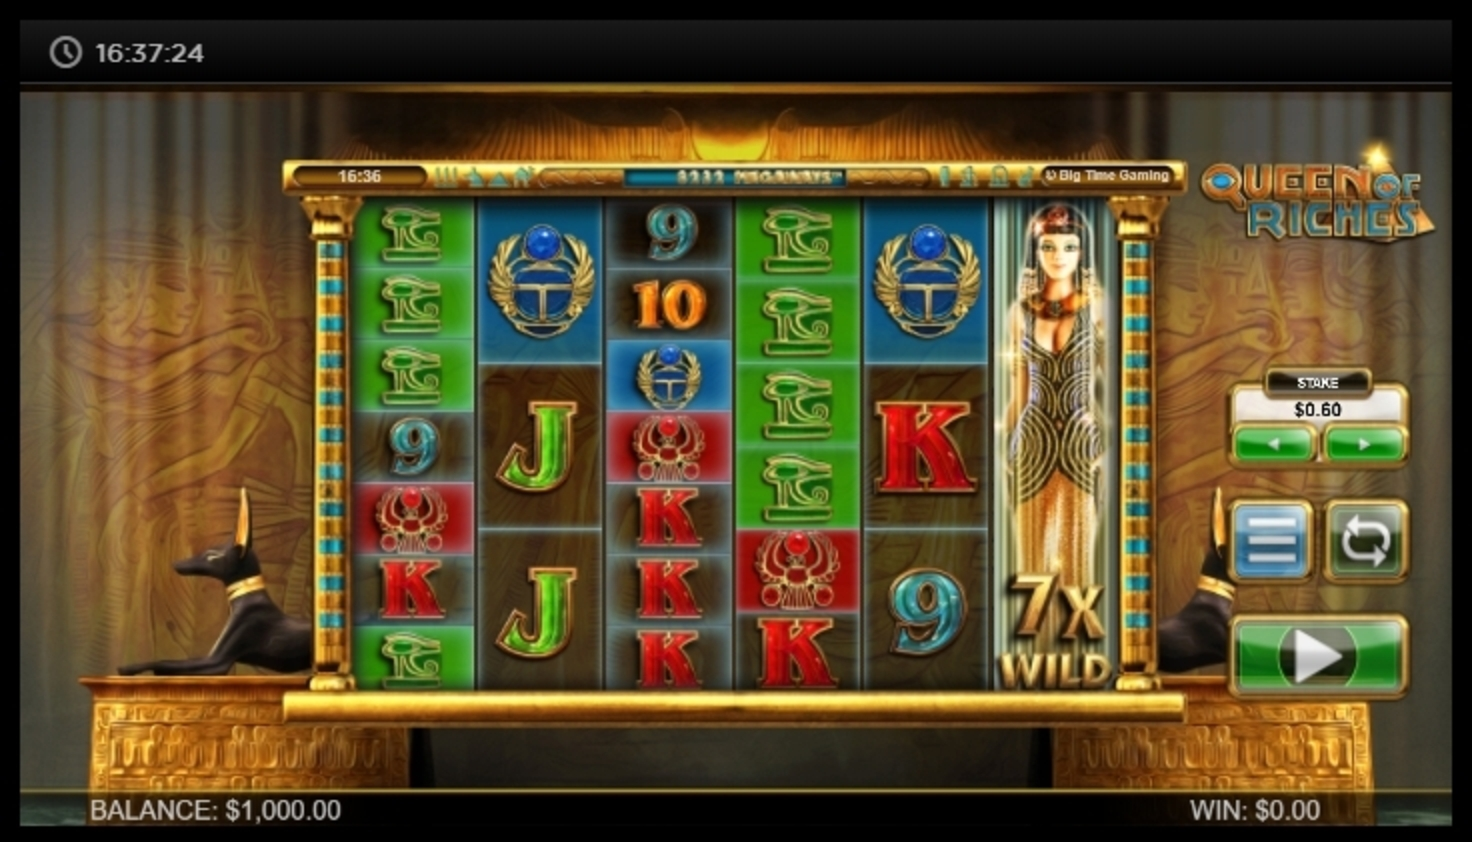 Reels in Queen of Riches Slot Game by Big Time Gaming